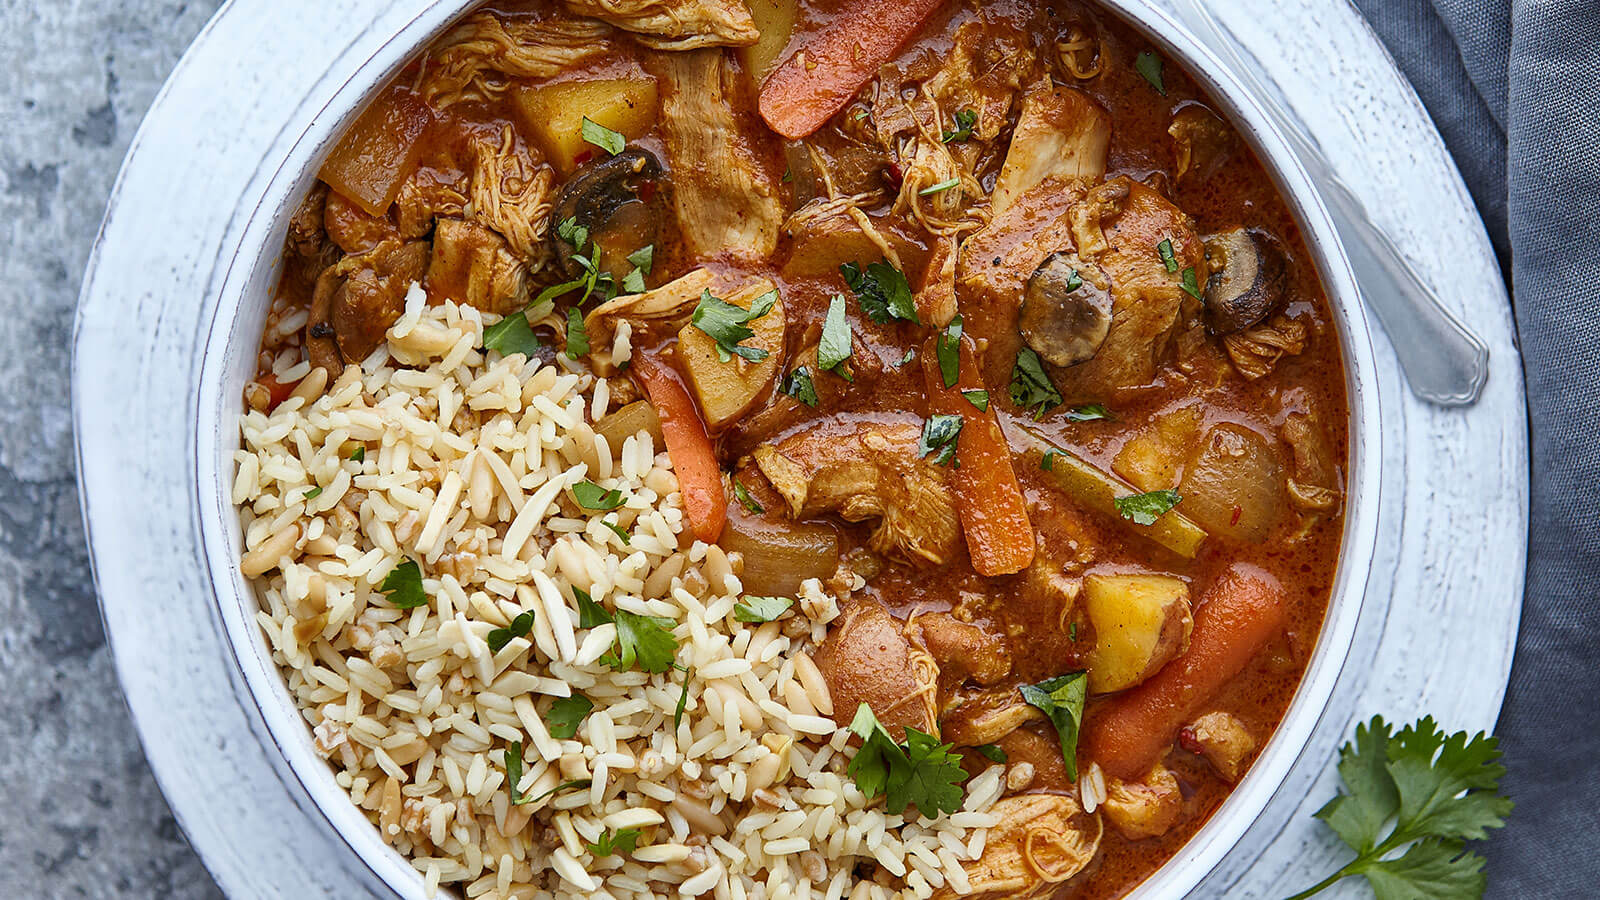 Slow-Cooker-Coconut-Curry-Chicken-with-Vegetables-and-Rice-LBM